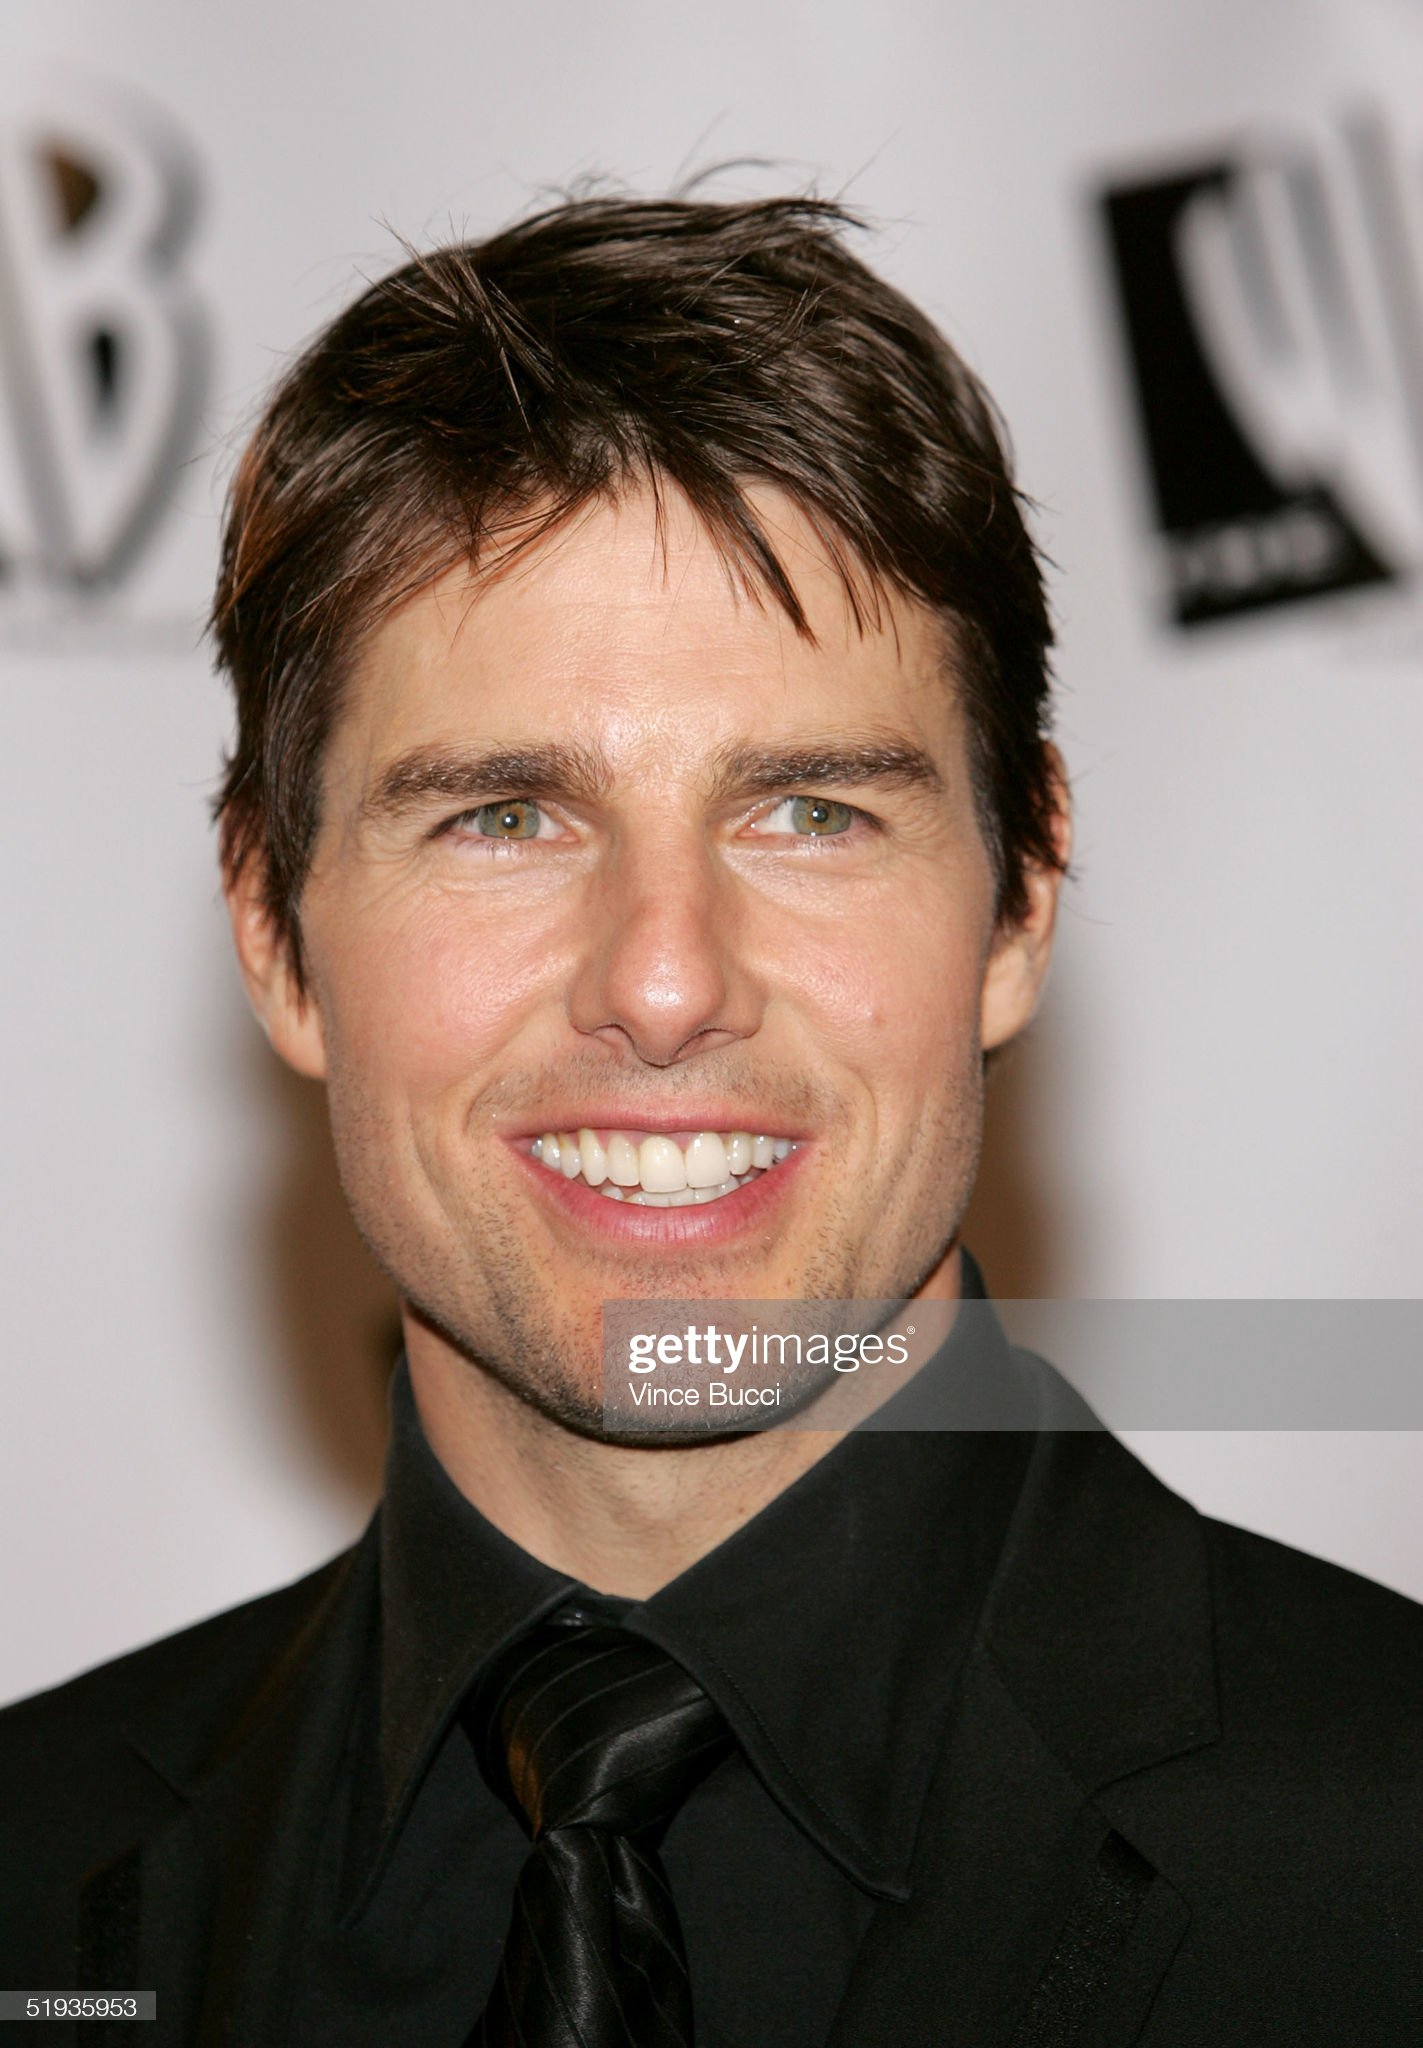 Ojos verdes - Famosas y famosos con los ojos de color VERDE Tom-cruise-poses-in-the-press-room-at-the-10th-annual-critics-choice-picture-id51935953?s=2048x2048